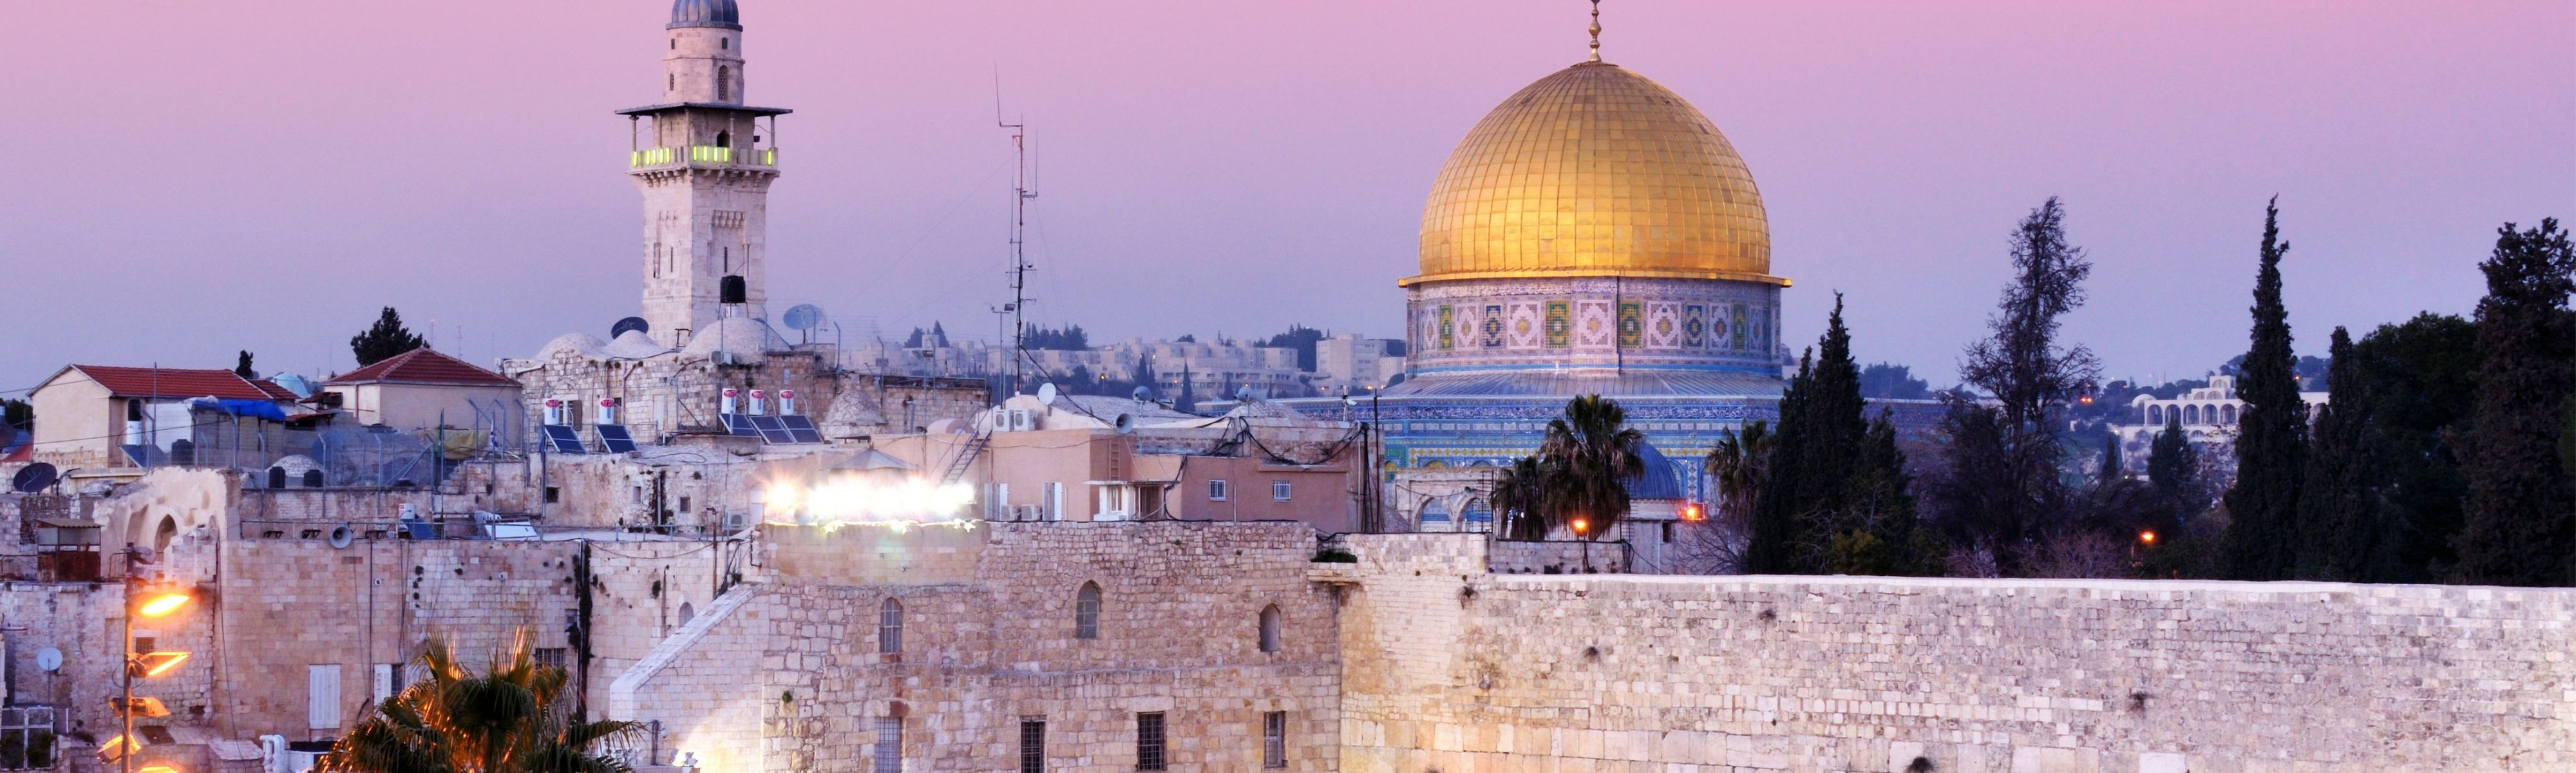 western wall and dome of the rock at sunset in jerusalem